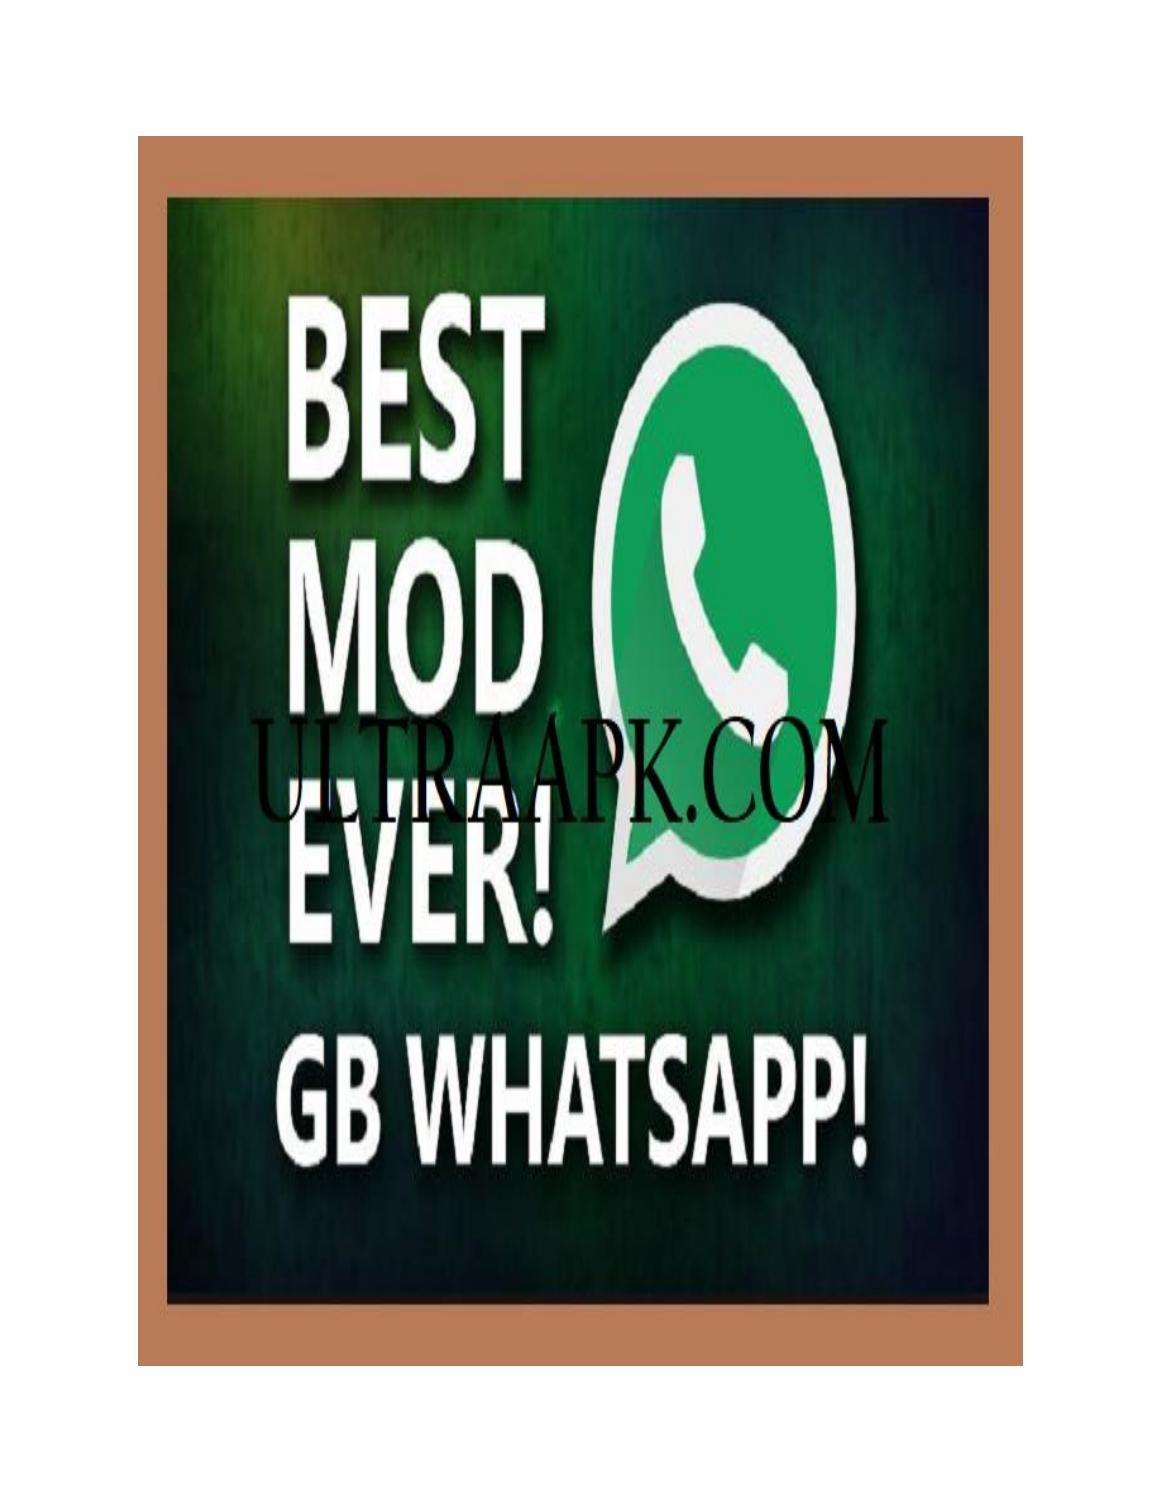 GBWhatsapp APK Free Download for Android & IOS by Ultra APK